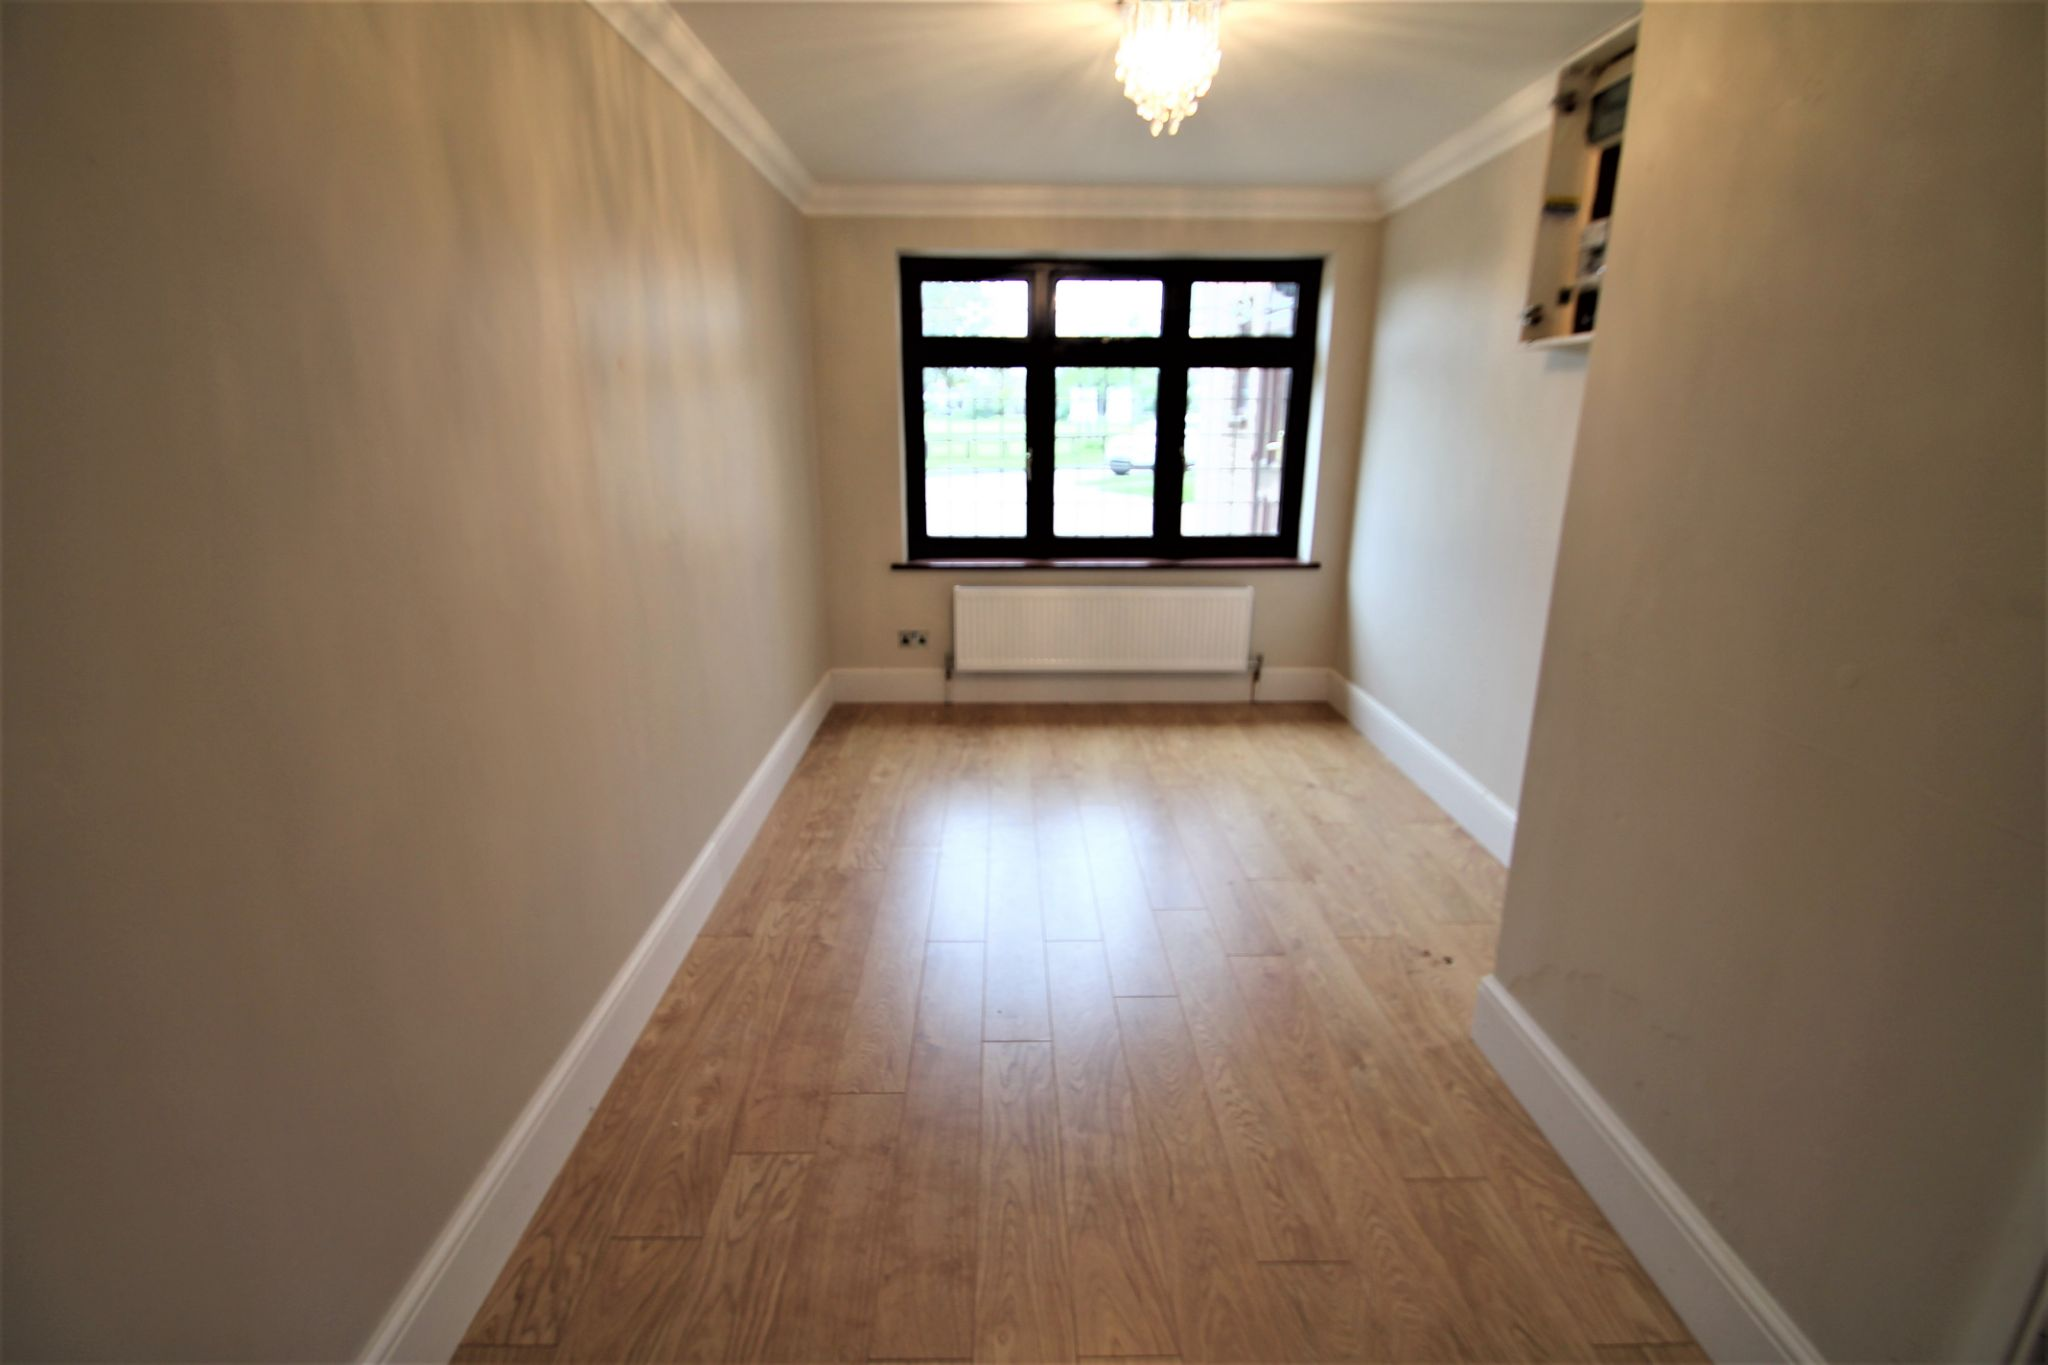 5 Bedroom Detached House For Sale - Annex Bedroom